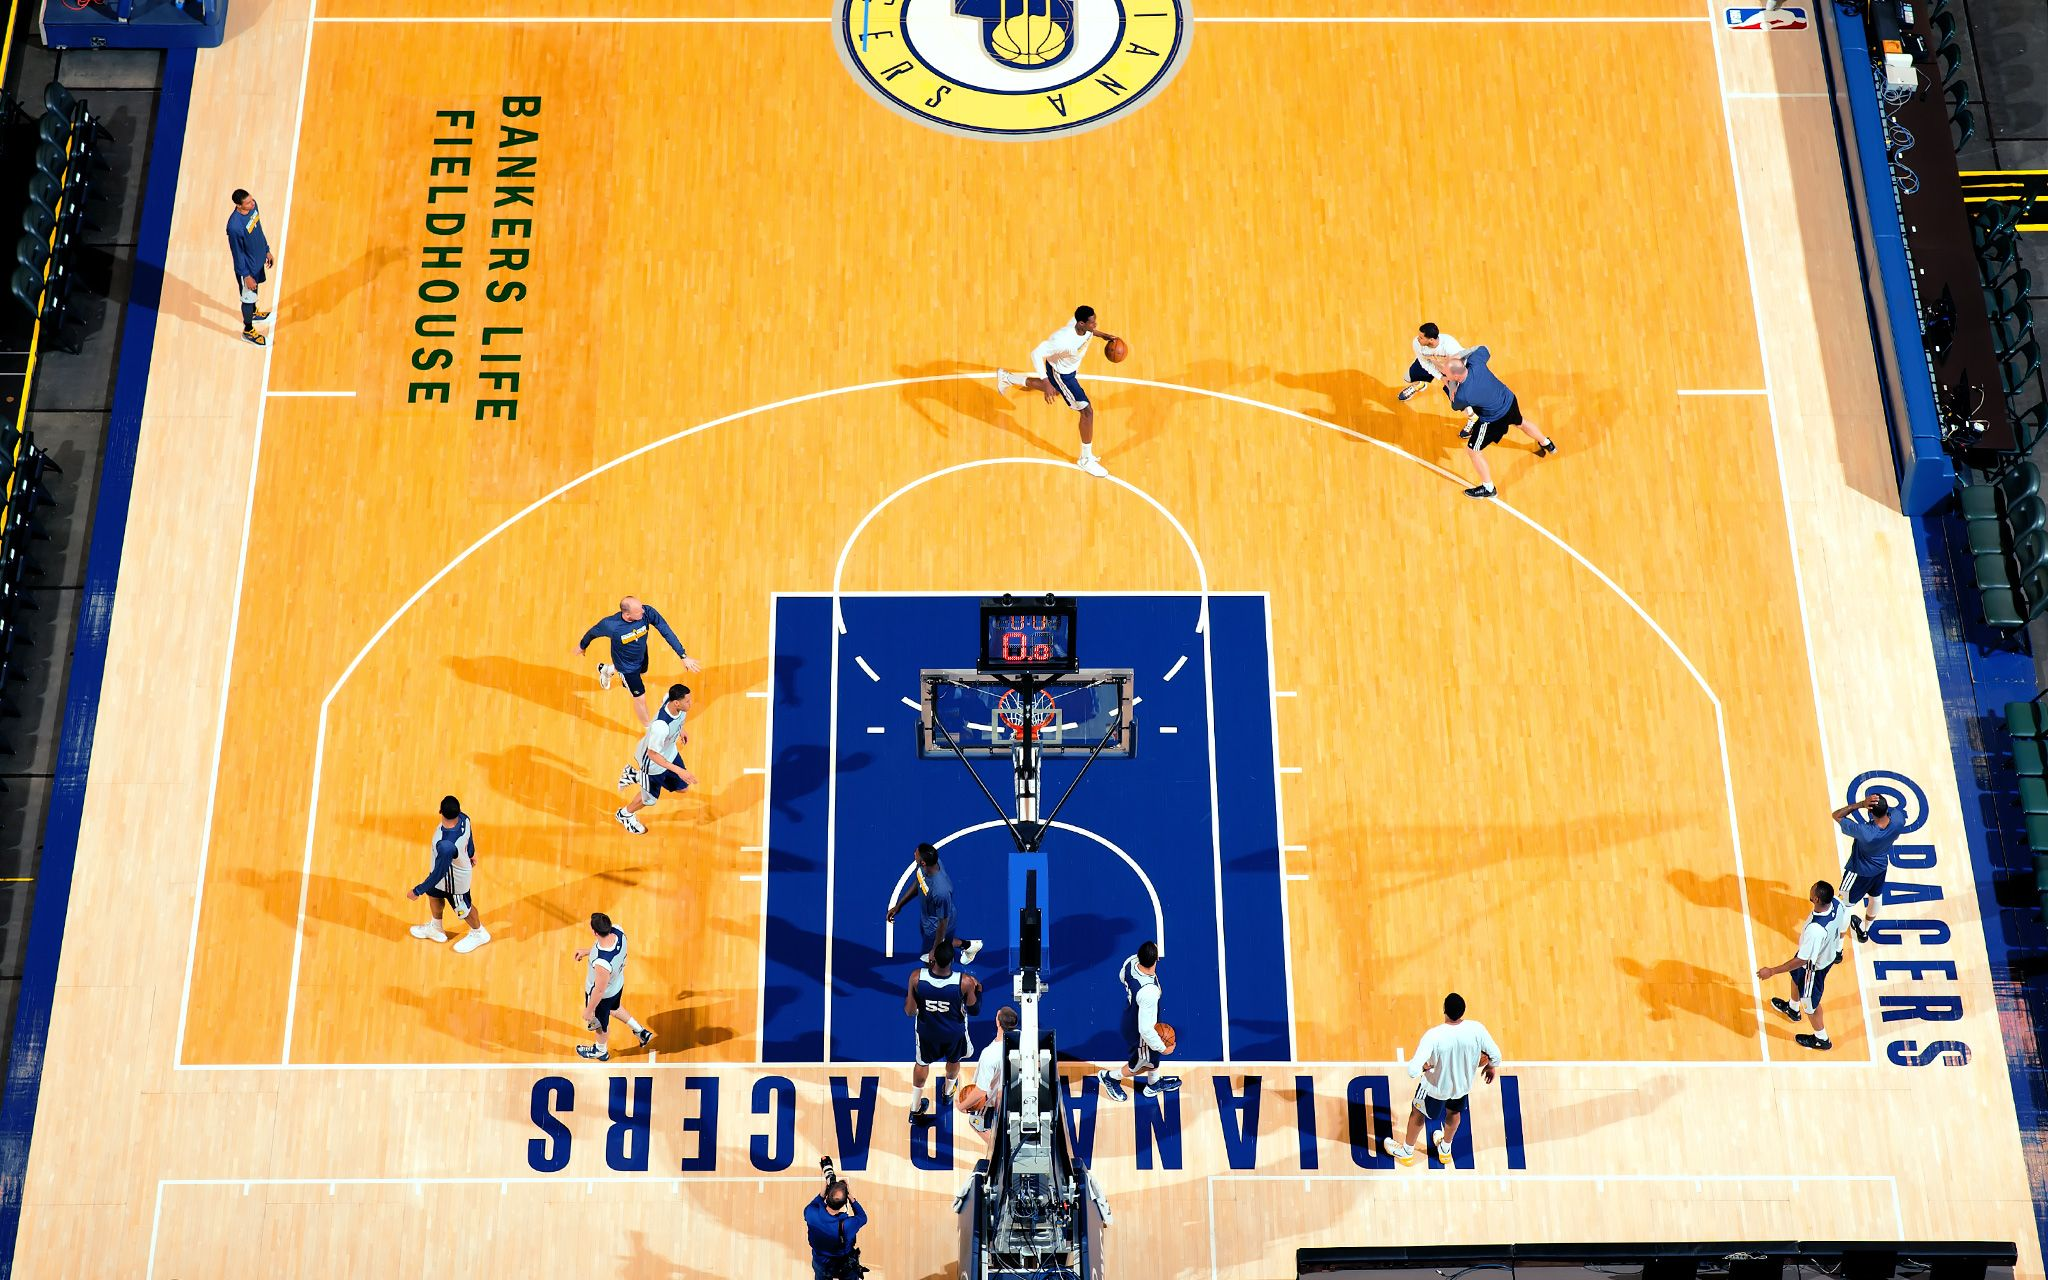 Indiana Pacers Bird s eye view of practice